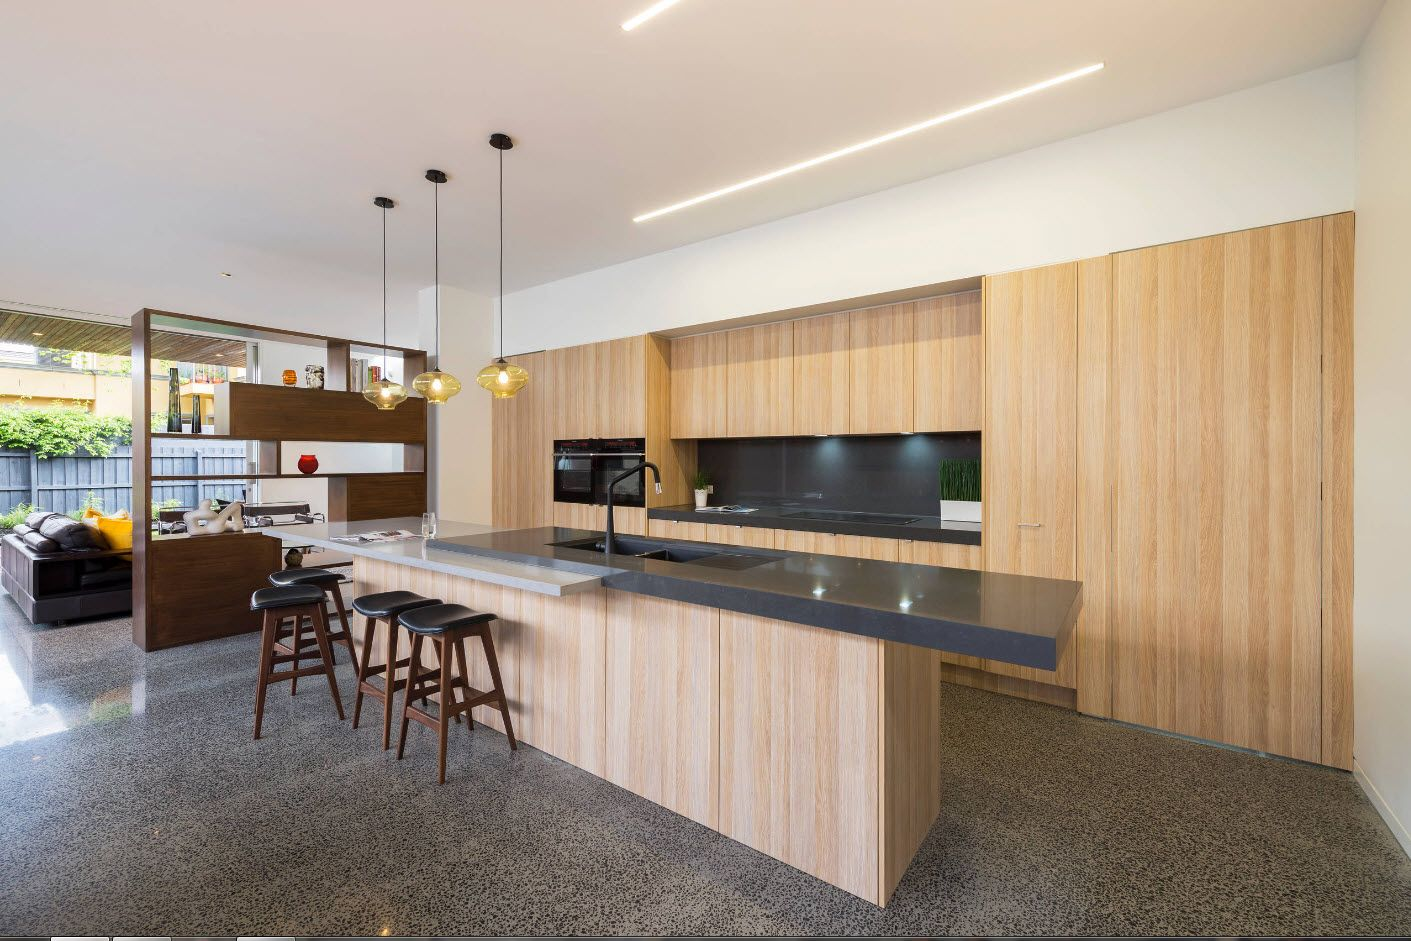 Light wooden decoration of the kitchen with white ceiling